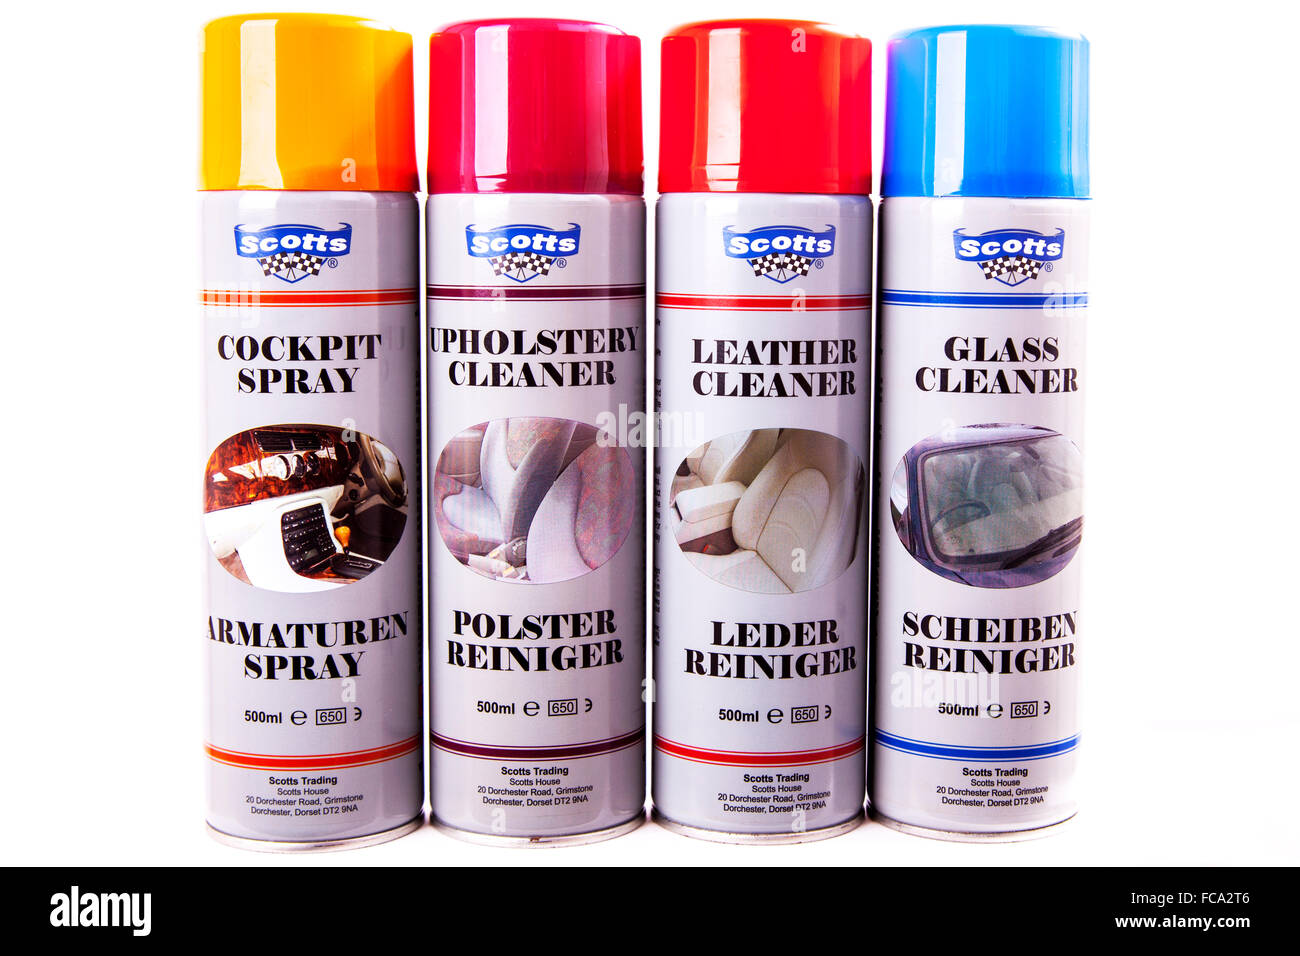 Scotts Car care products cans aerosols aerosol tins glass cleaner leather upholstery cutout cut out isolated white - Stock Image